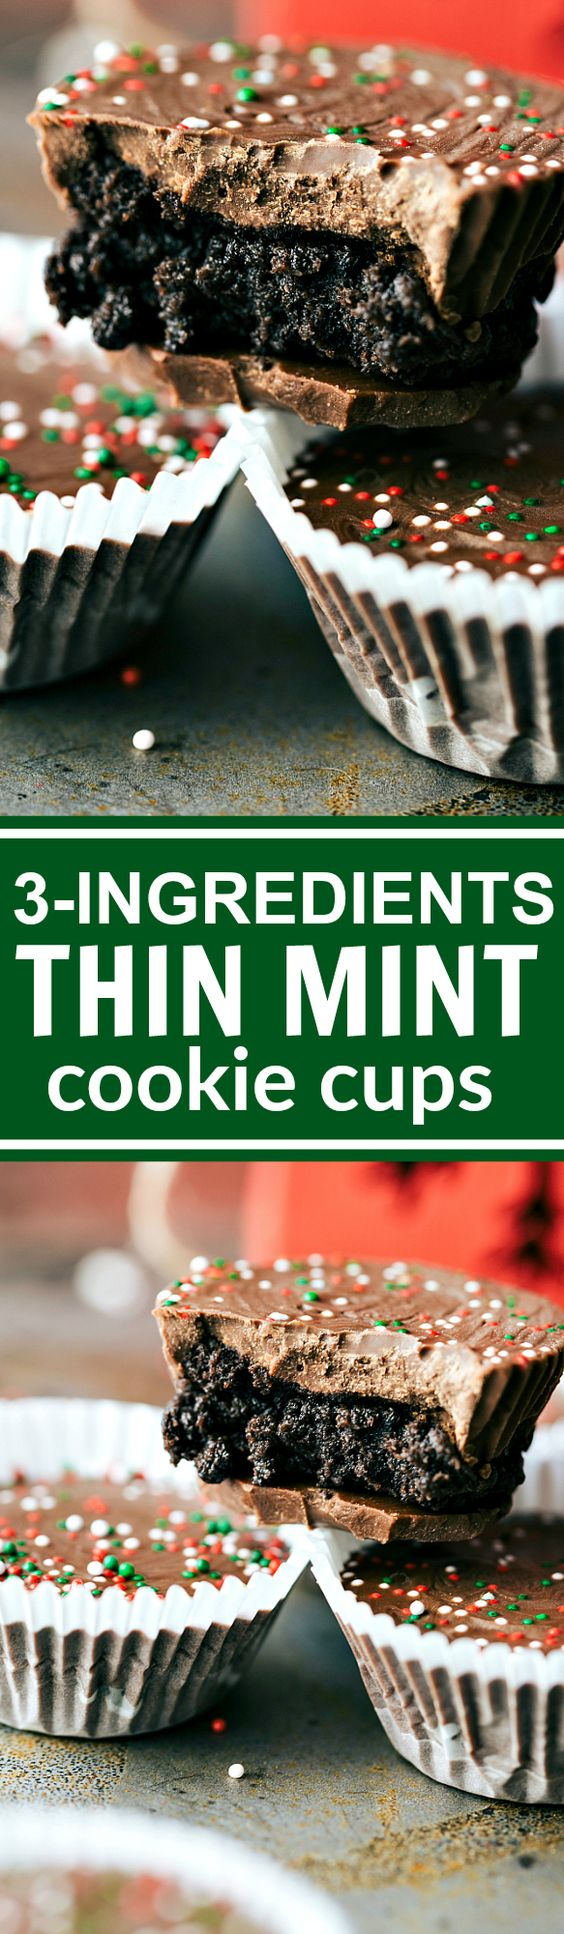 THREE INGREDIENT easy, no-bake Chocolate THIN MINT cups Recipe via Chelsea's Messy Apron - The BEST Christmas Cookies, Fudge, Candy, Barks and Brittles Recipes - Favorites for Holiday Treats Gift Plates and Goodies Bags! #chrstmascookies #christmascandy #christmastreats #holidaydesserts #holidayrecipes #christmascandies #holidaygiftplates